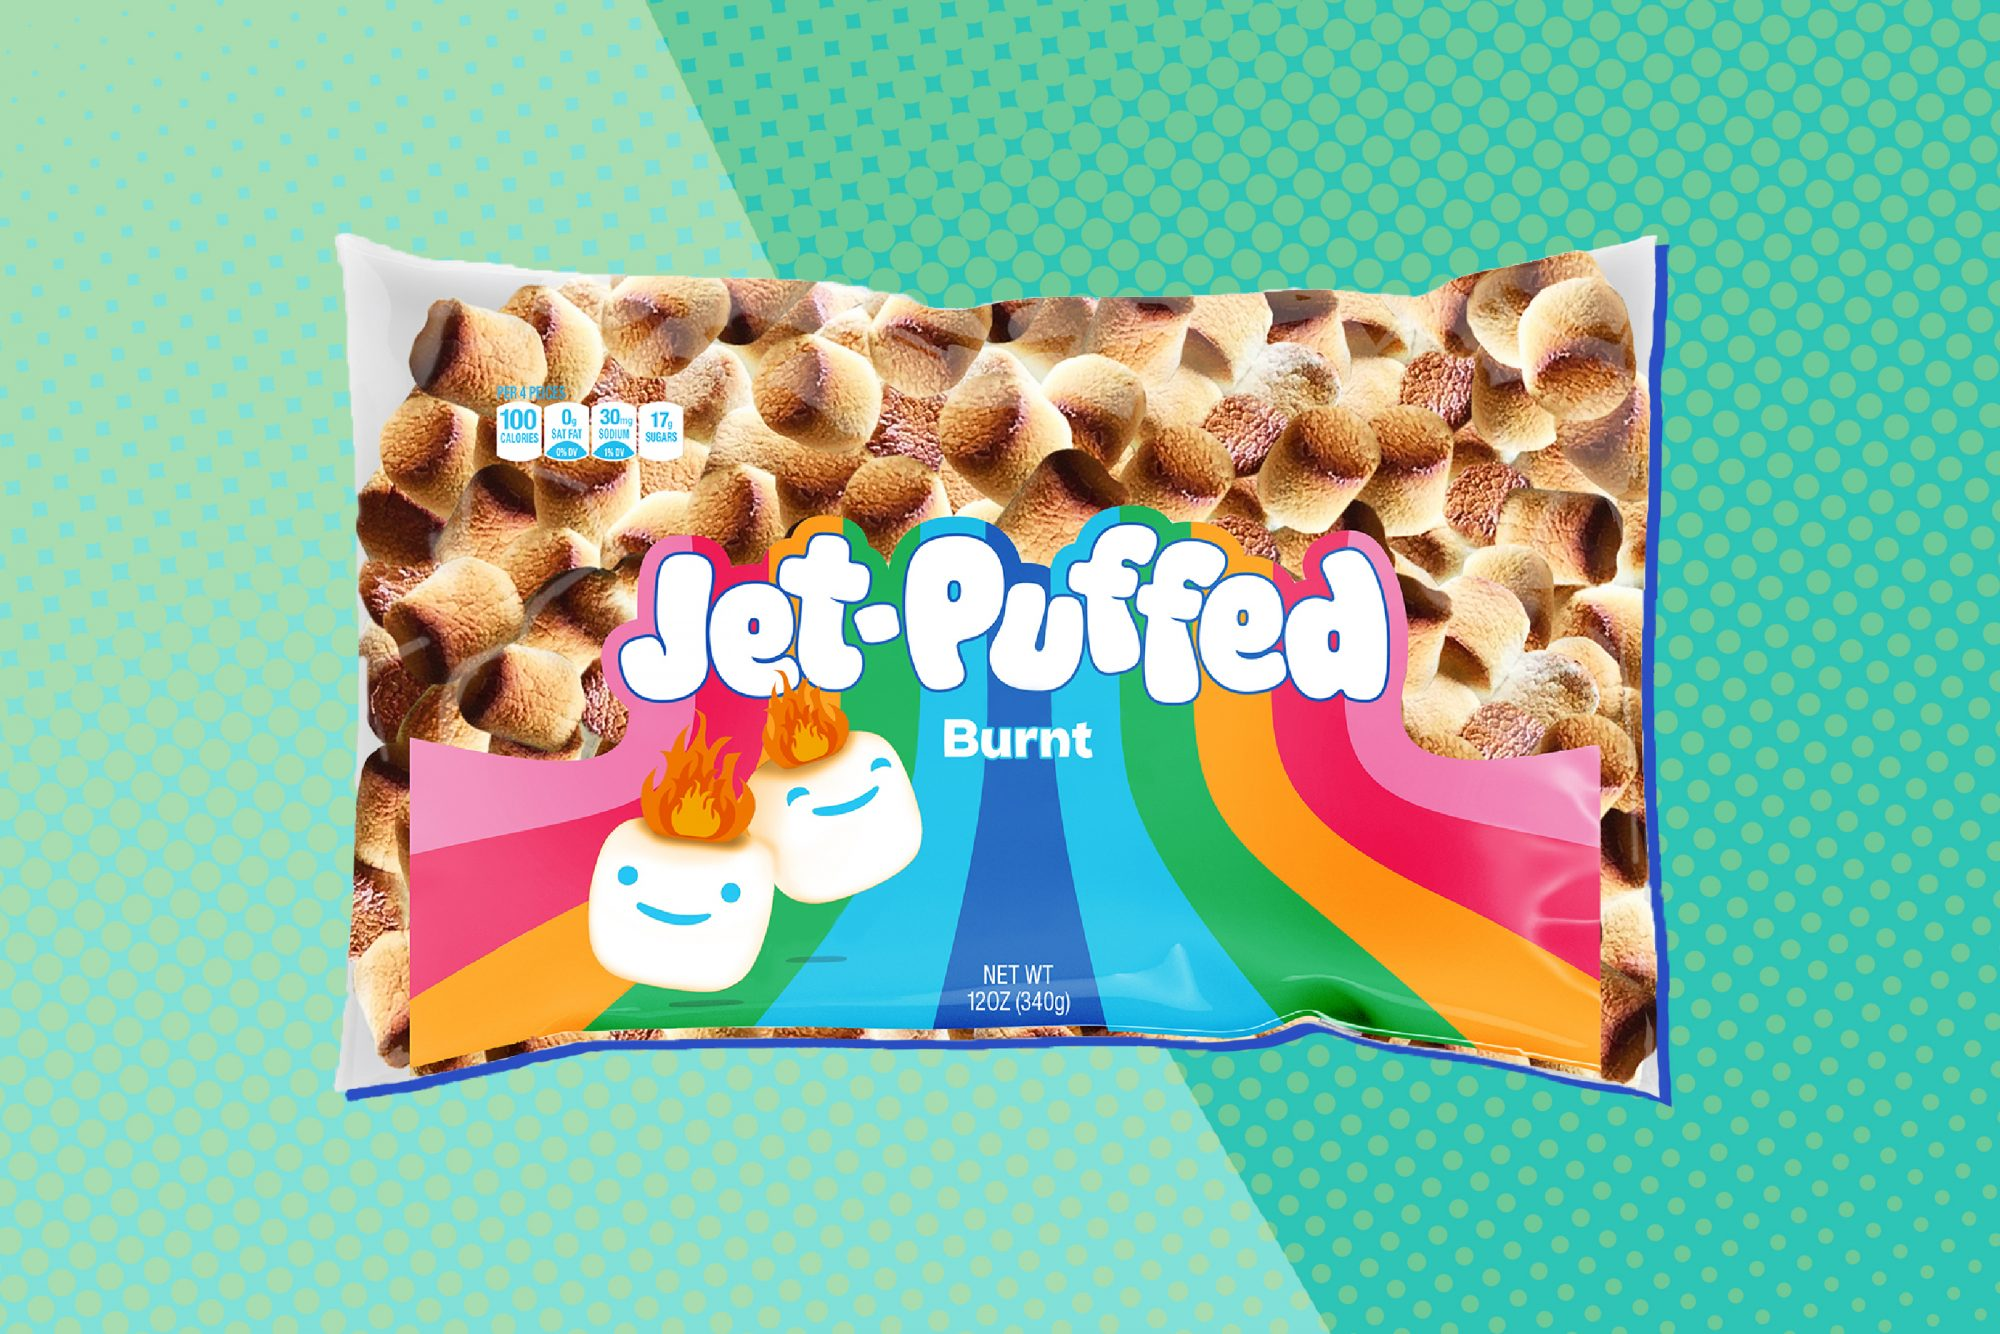 a bag of Jet-Puffed Burnt Marshmallows on a teal background